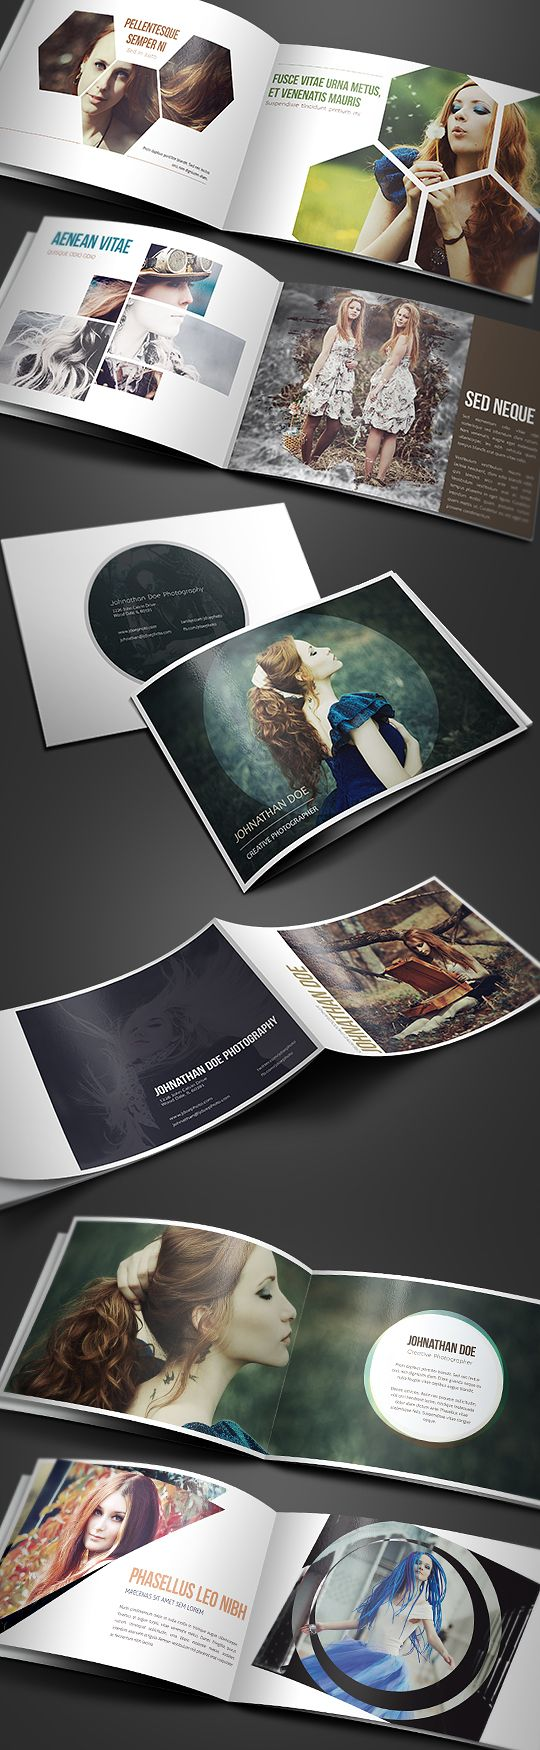 Creative Photography Portfolio A4 Brochure is a 16 paged A4 brochure / portfolio made for photographers, graphic designers, artists and other who want to show their work in different, creative way. Przemyslaw S